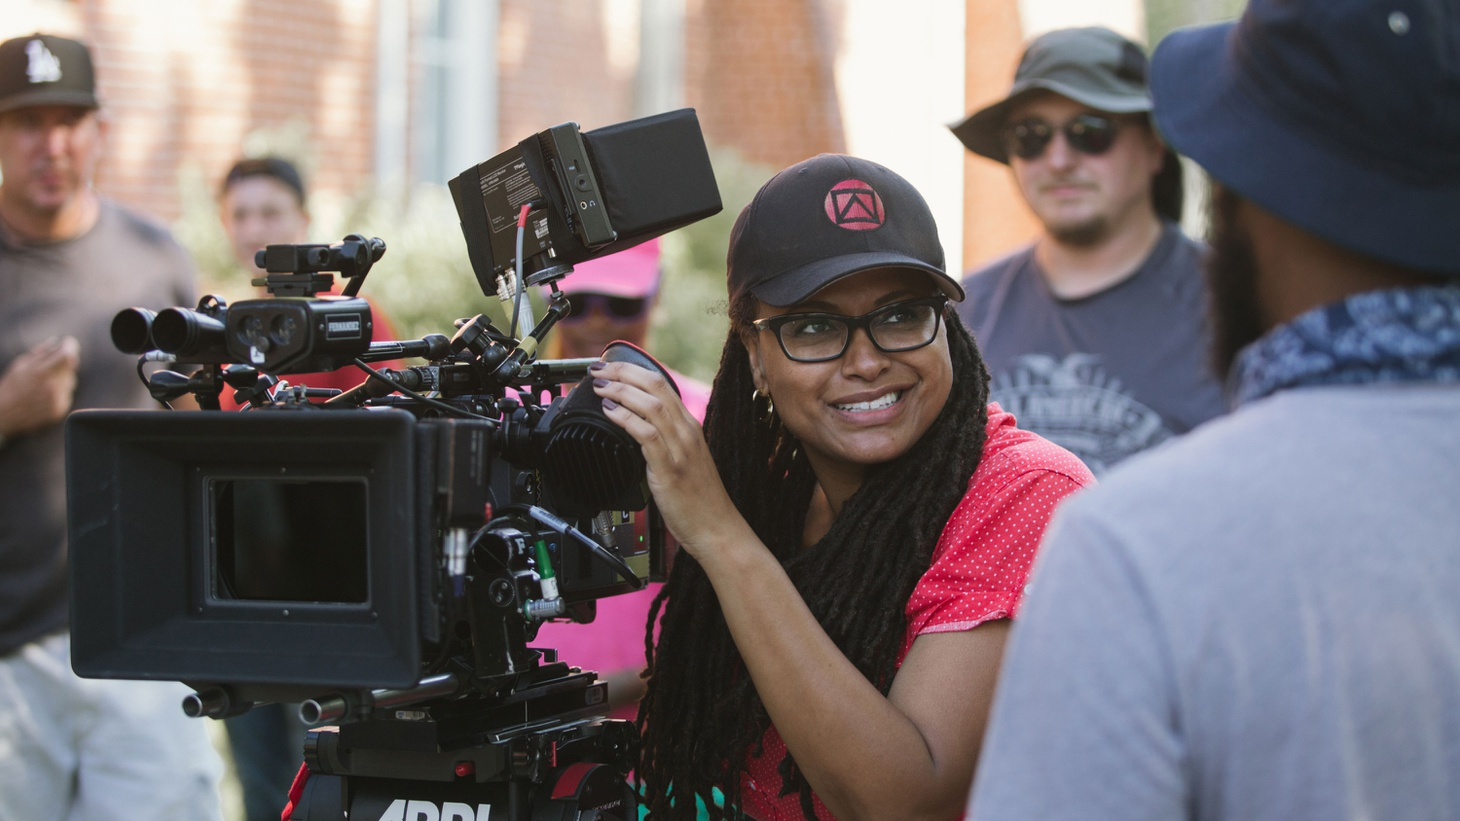 Before she became a filmmaker, Ava DuVernay worked as a film publicist. DuVernay traces how she shifted her career and ended up making history as the first African American woman nominated for Best Director at the Golden Globes for the historical drama Selma.